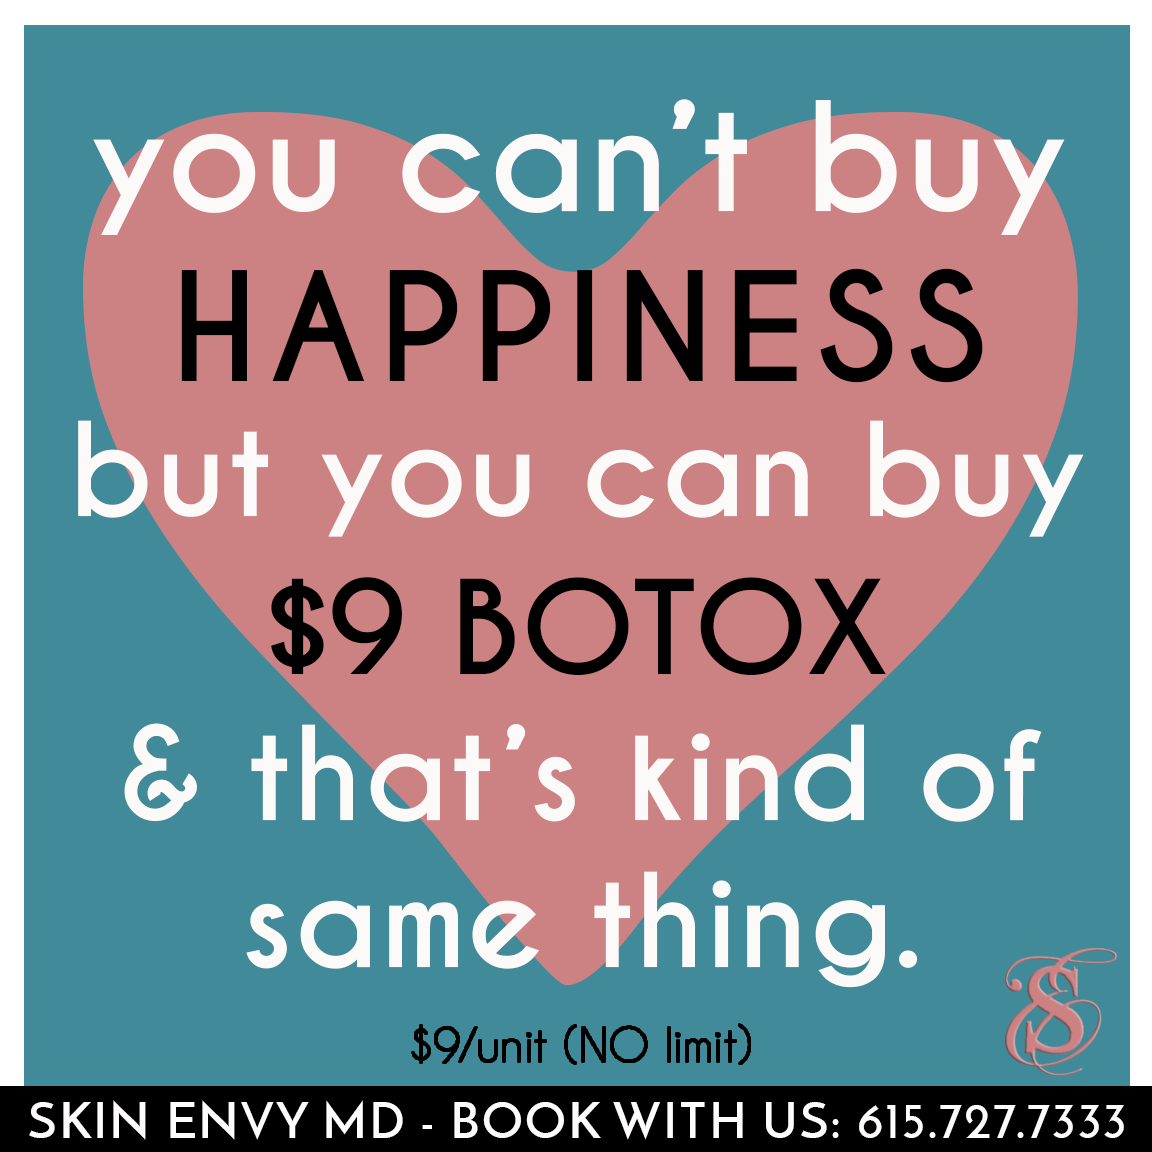 You Can't Buy Happiness But You Can Buy $9 Botox - by Skin Envy MD Nashville.png